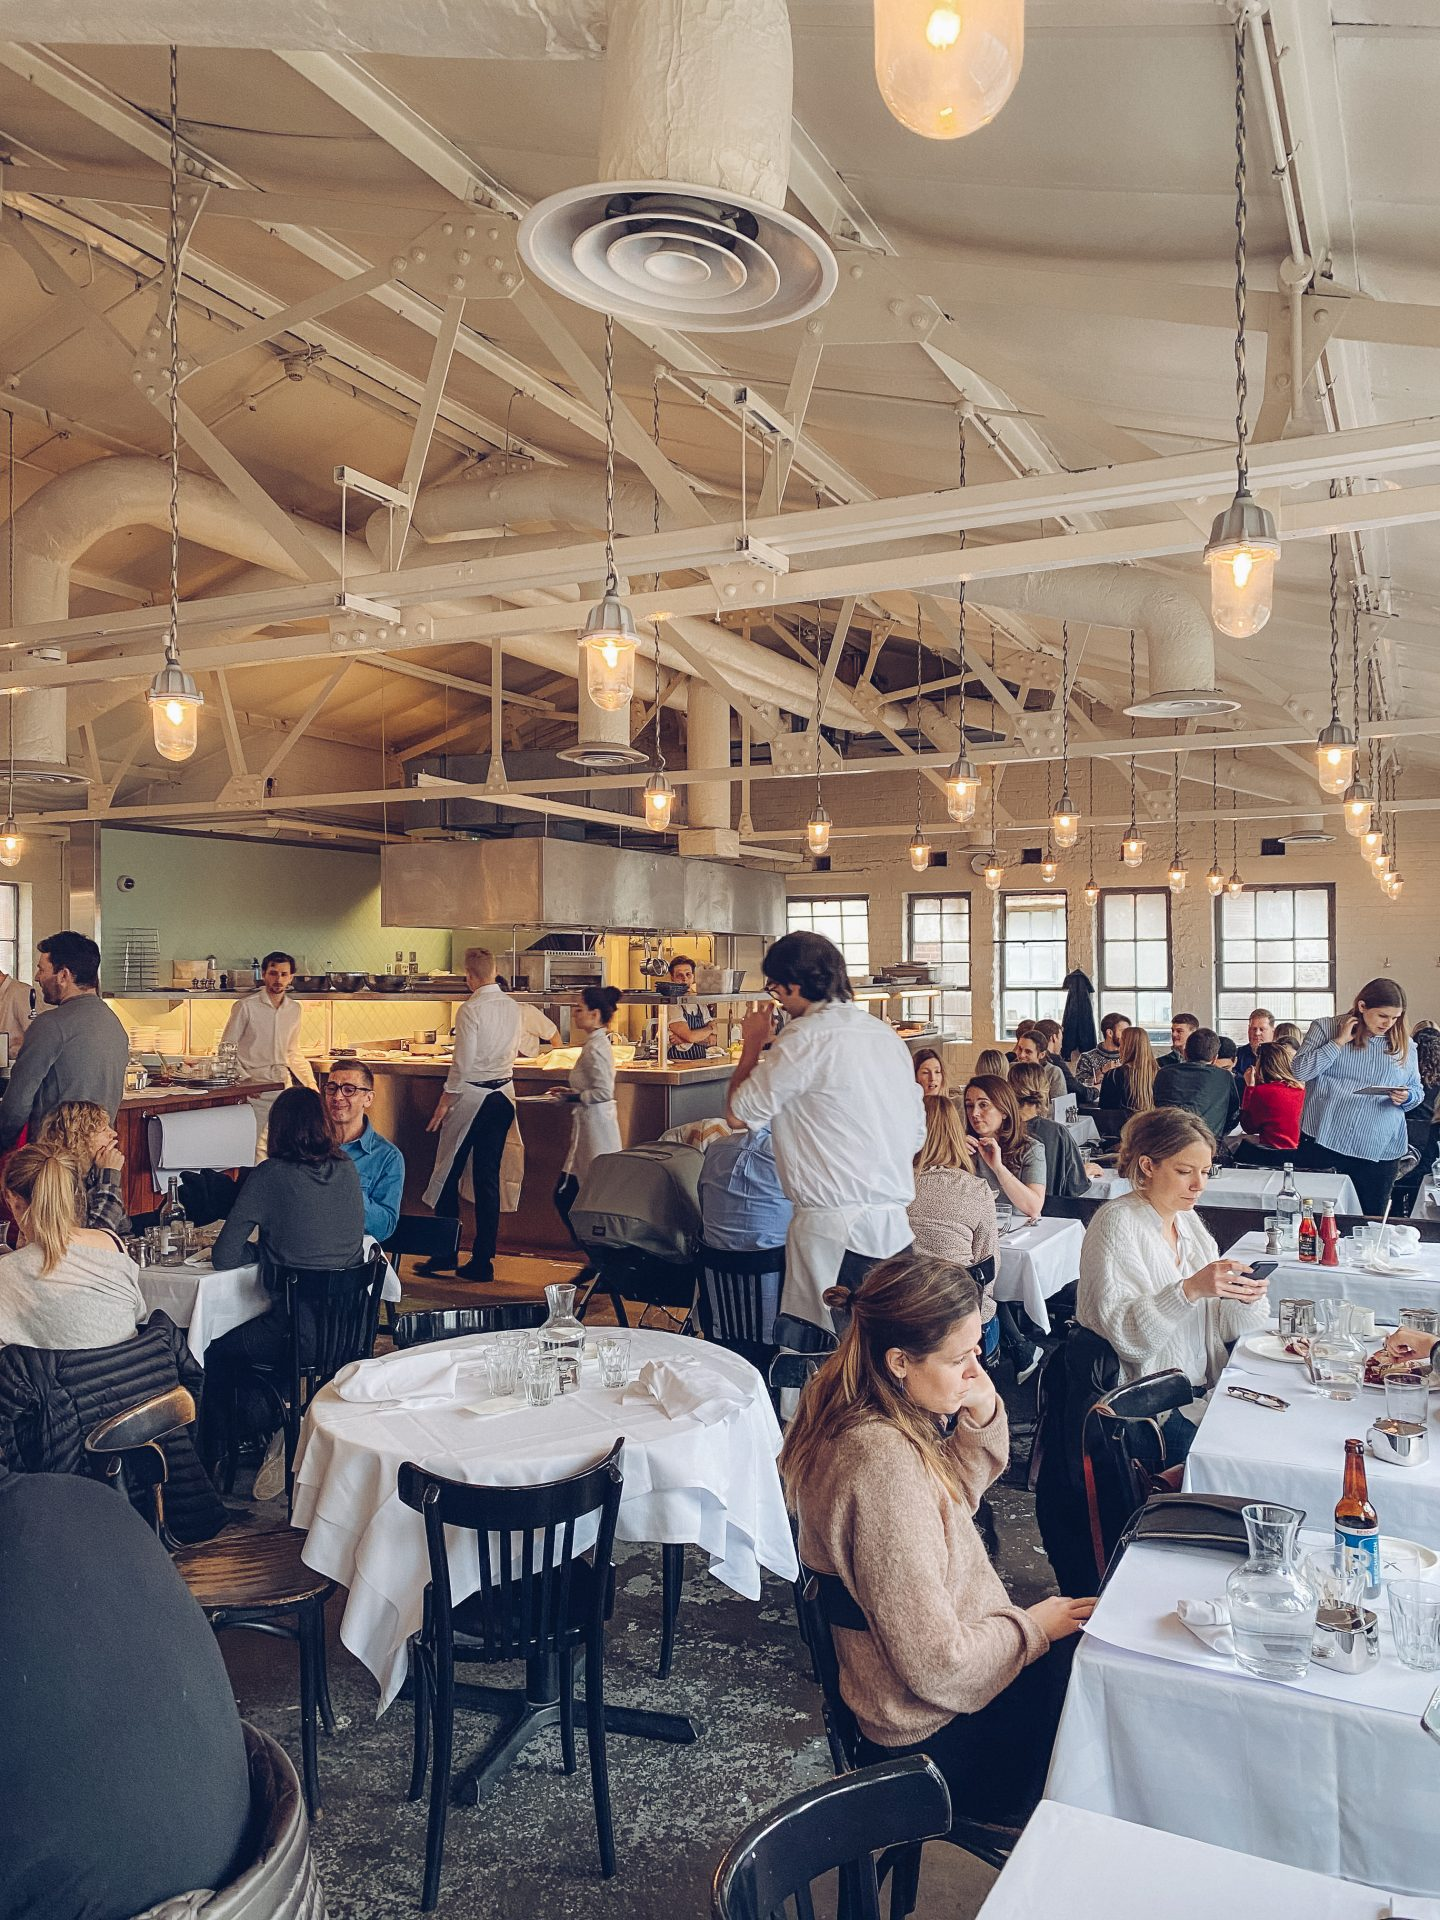 tables full of people in a warehouse space with tall ceilings, white walls and an open kitchen in the background